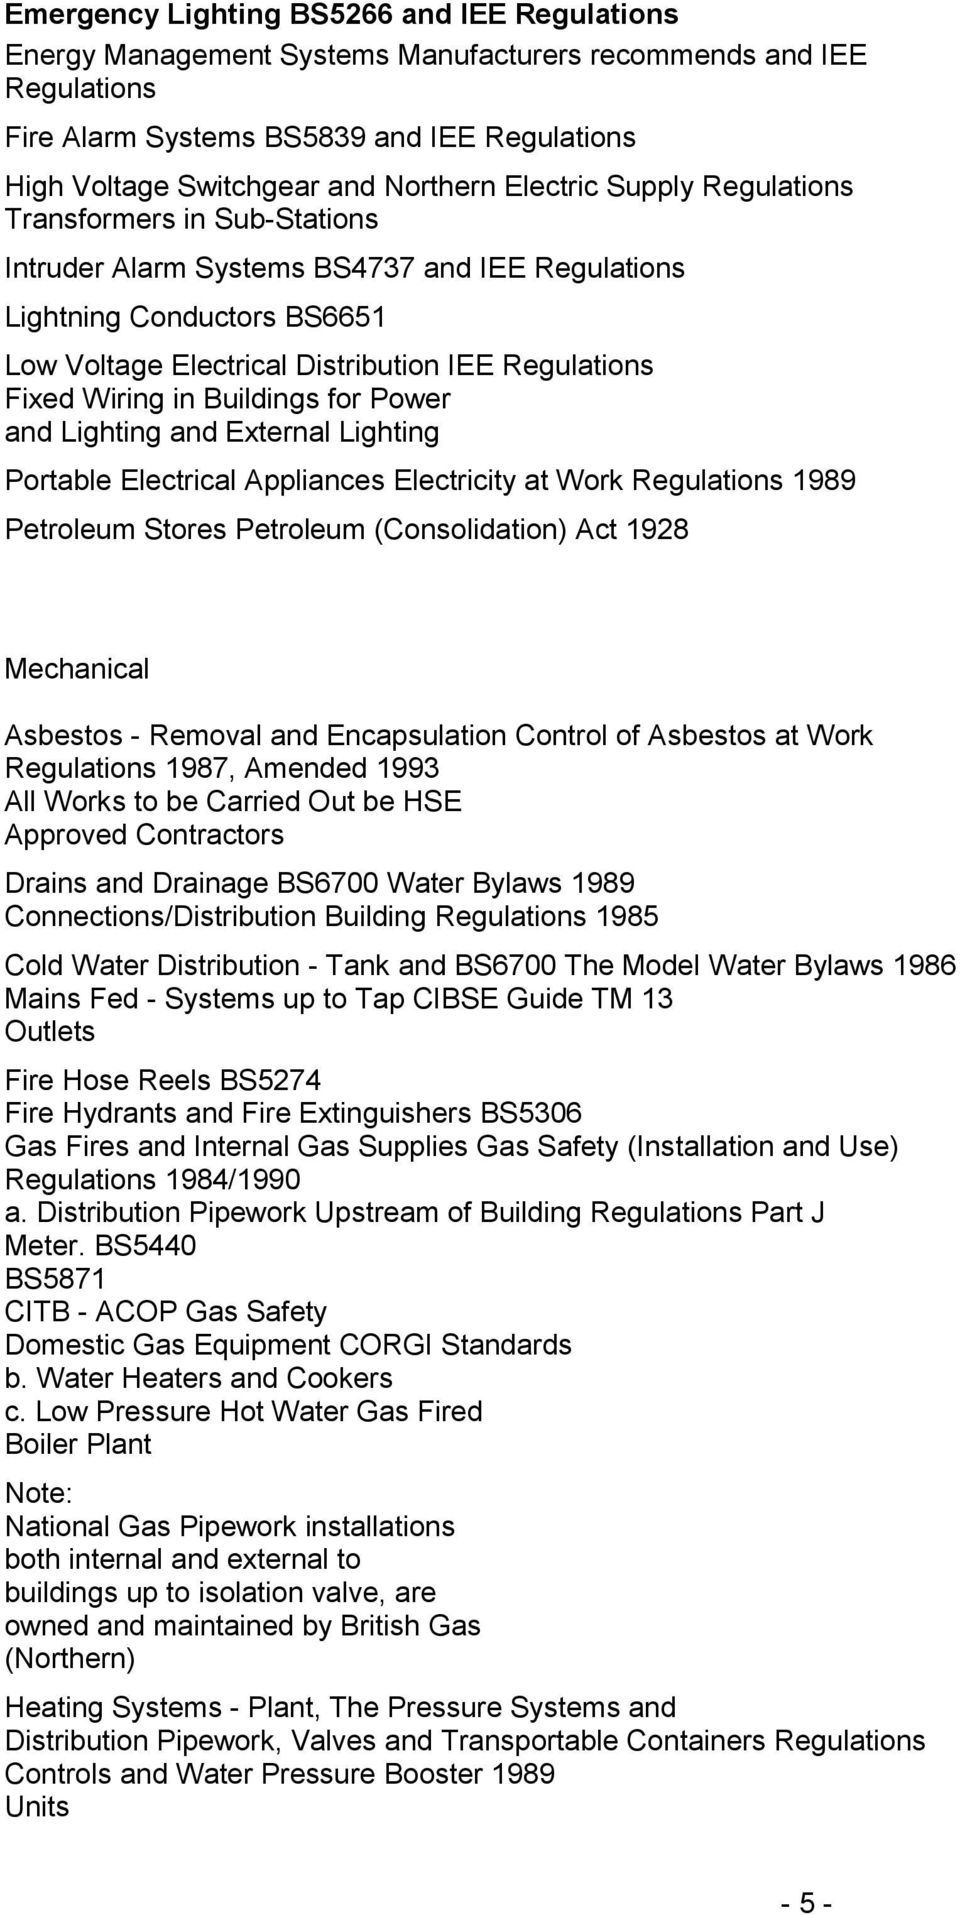 in Buildings for Power and Lighting and External Lighting Portable Electrical Appliances Electricity at Work Regulations 1989 Petroleum Stores Petroleum (Consolidation) Act 1928 Mechanical Asbestos -